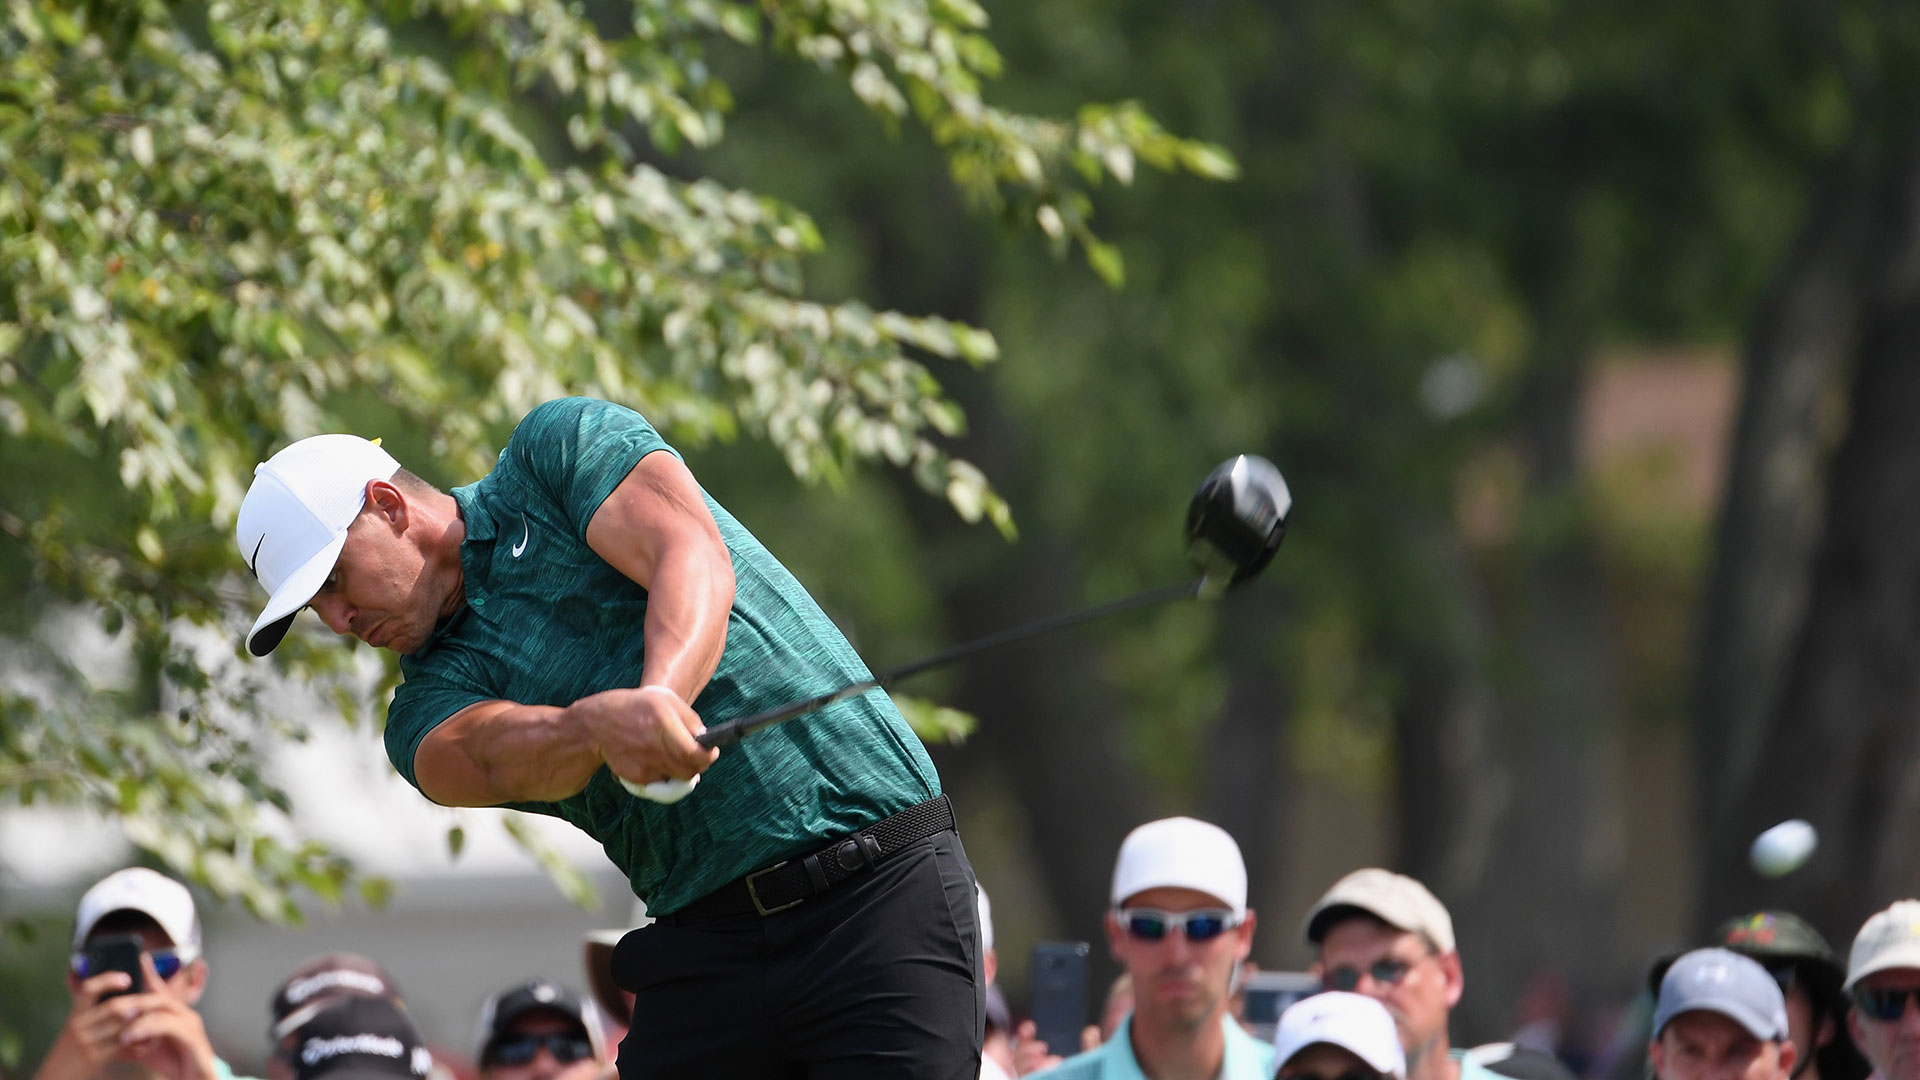 winning clubs used by brooks koepka at 2018 pga championship